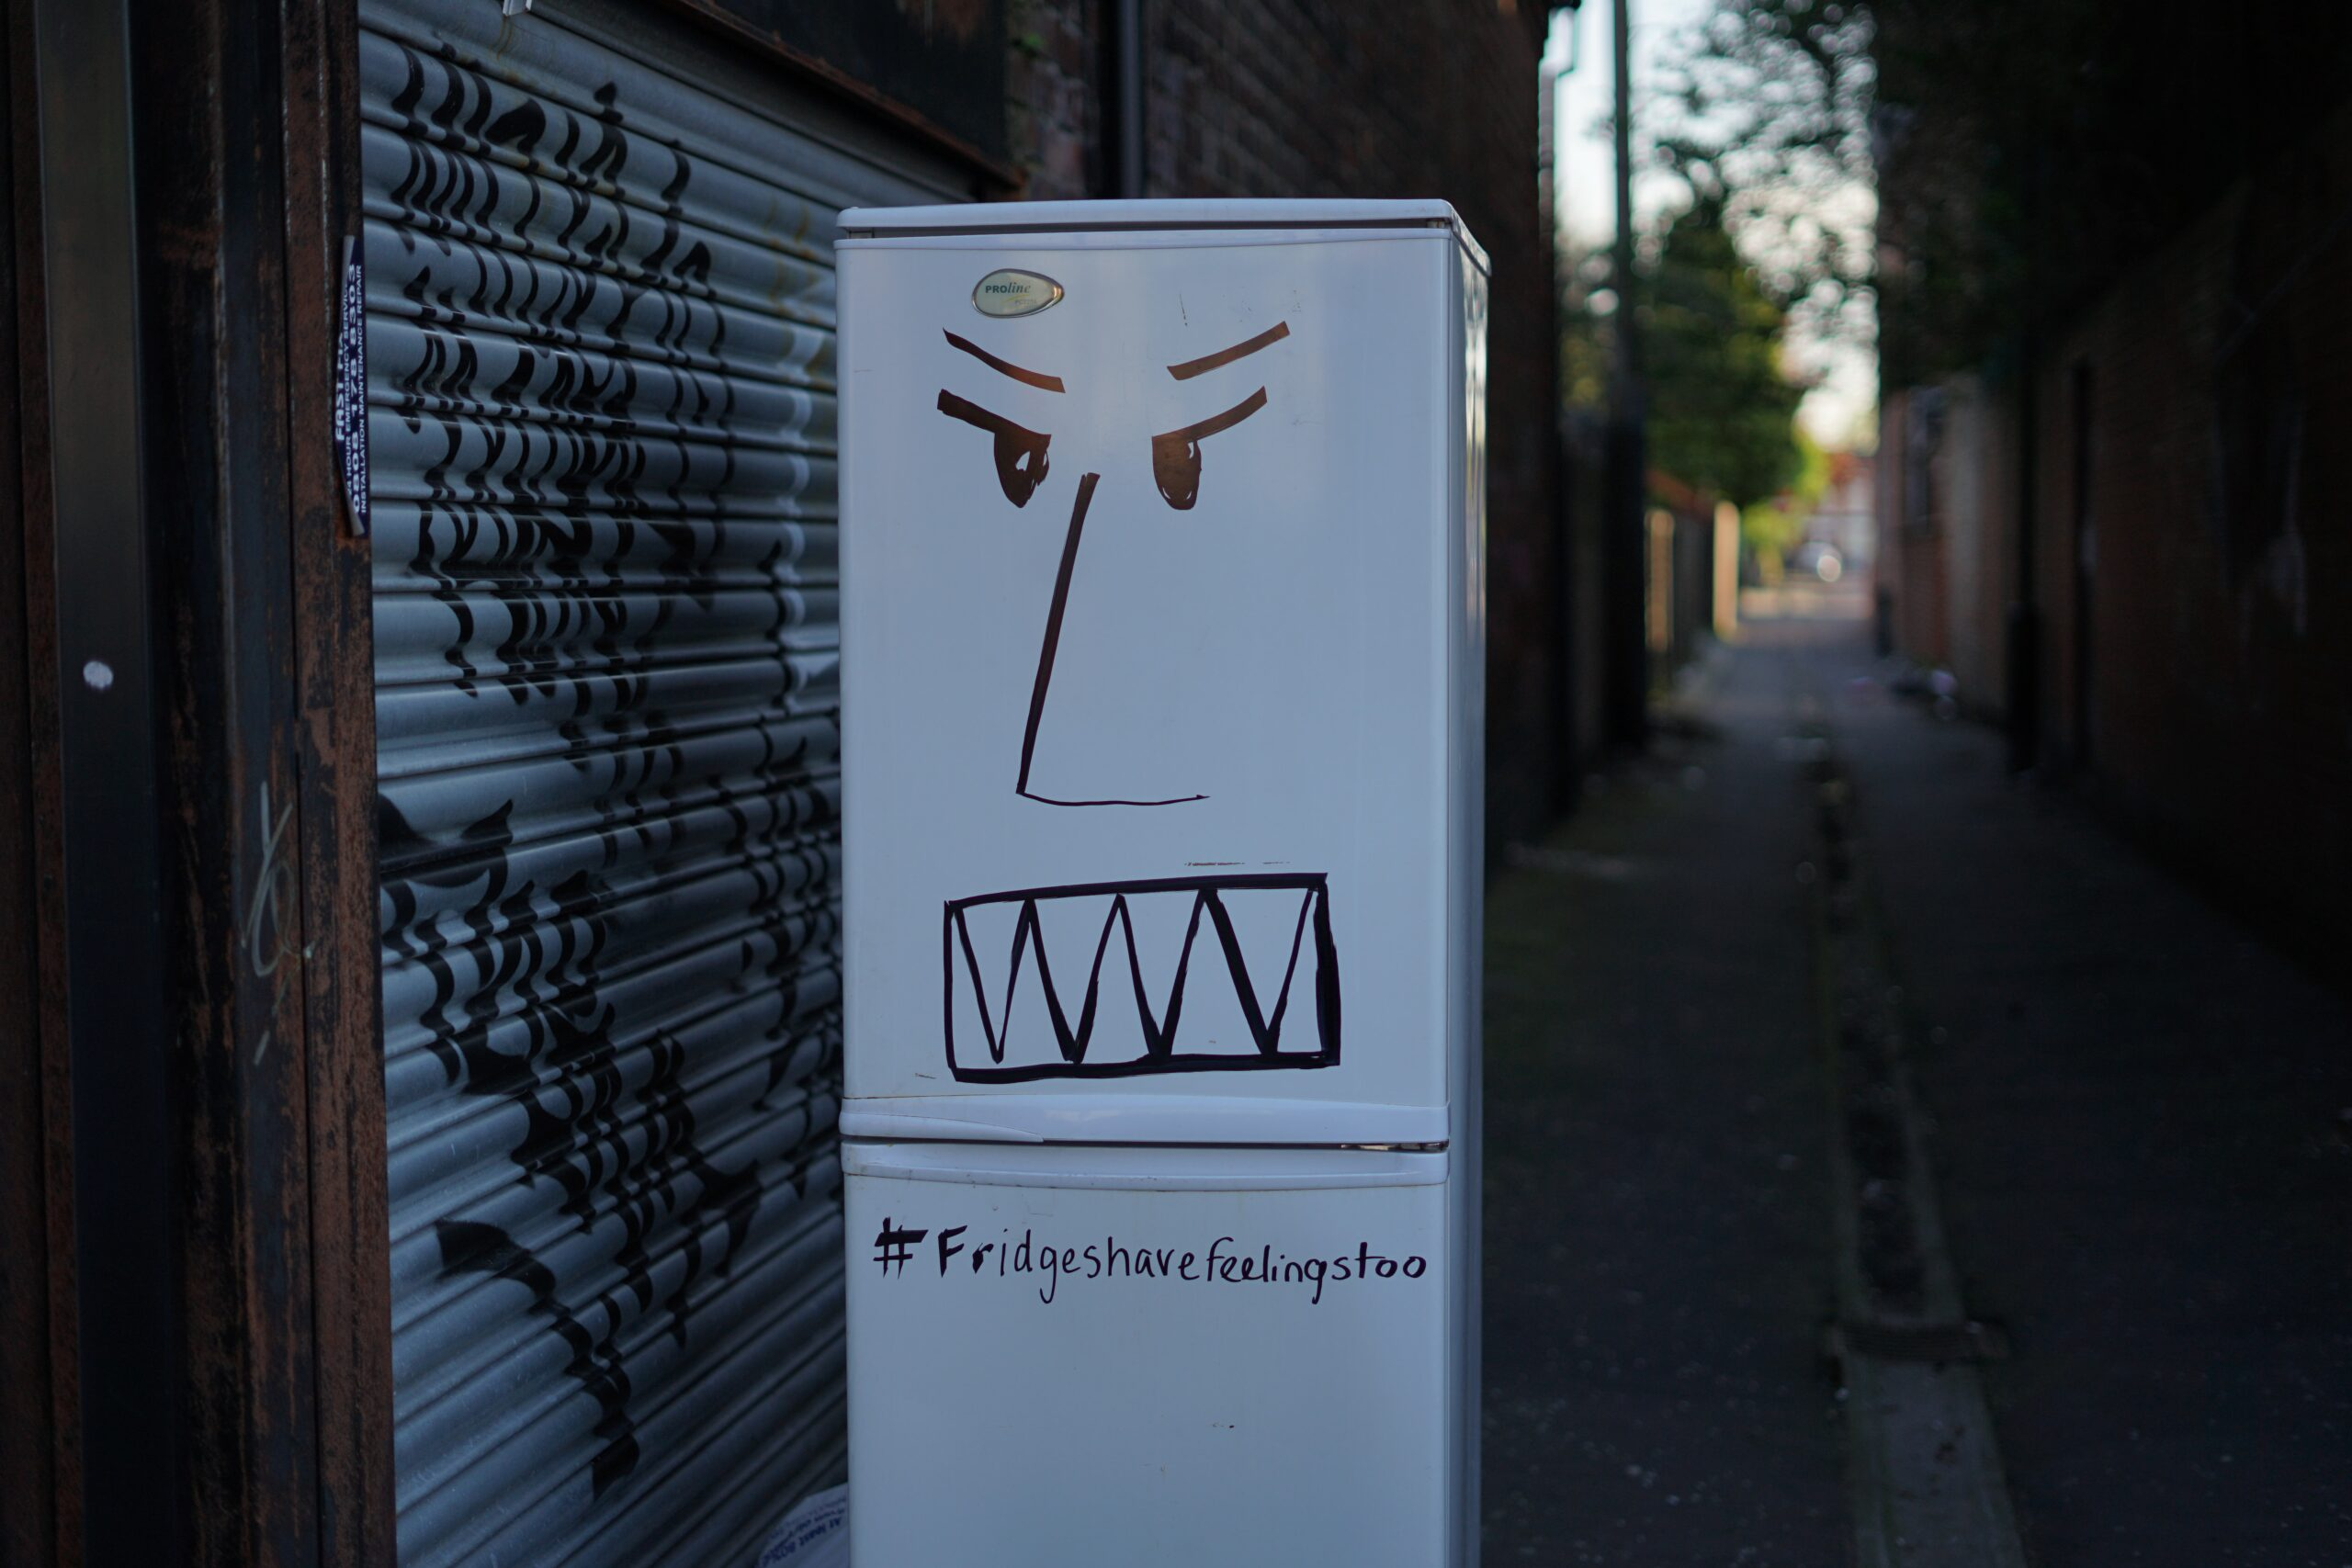 fridge with an angry face graffiti on it